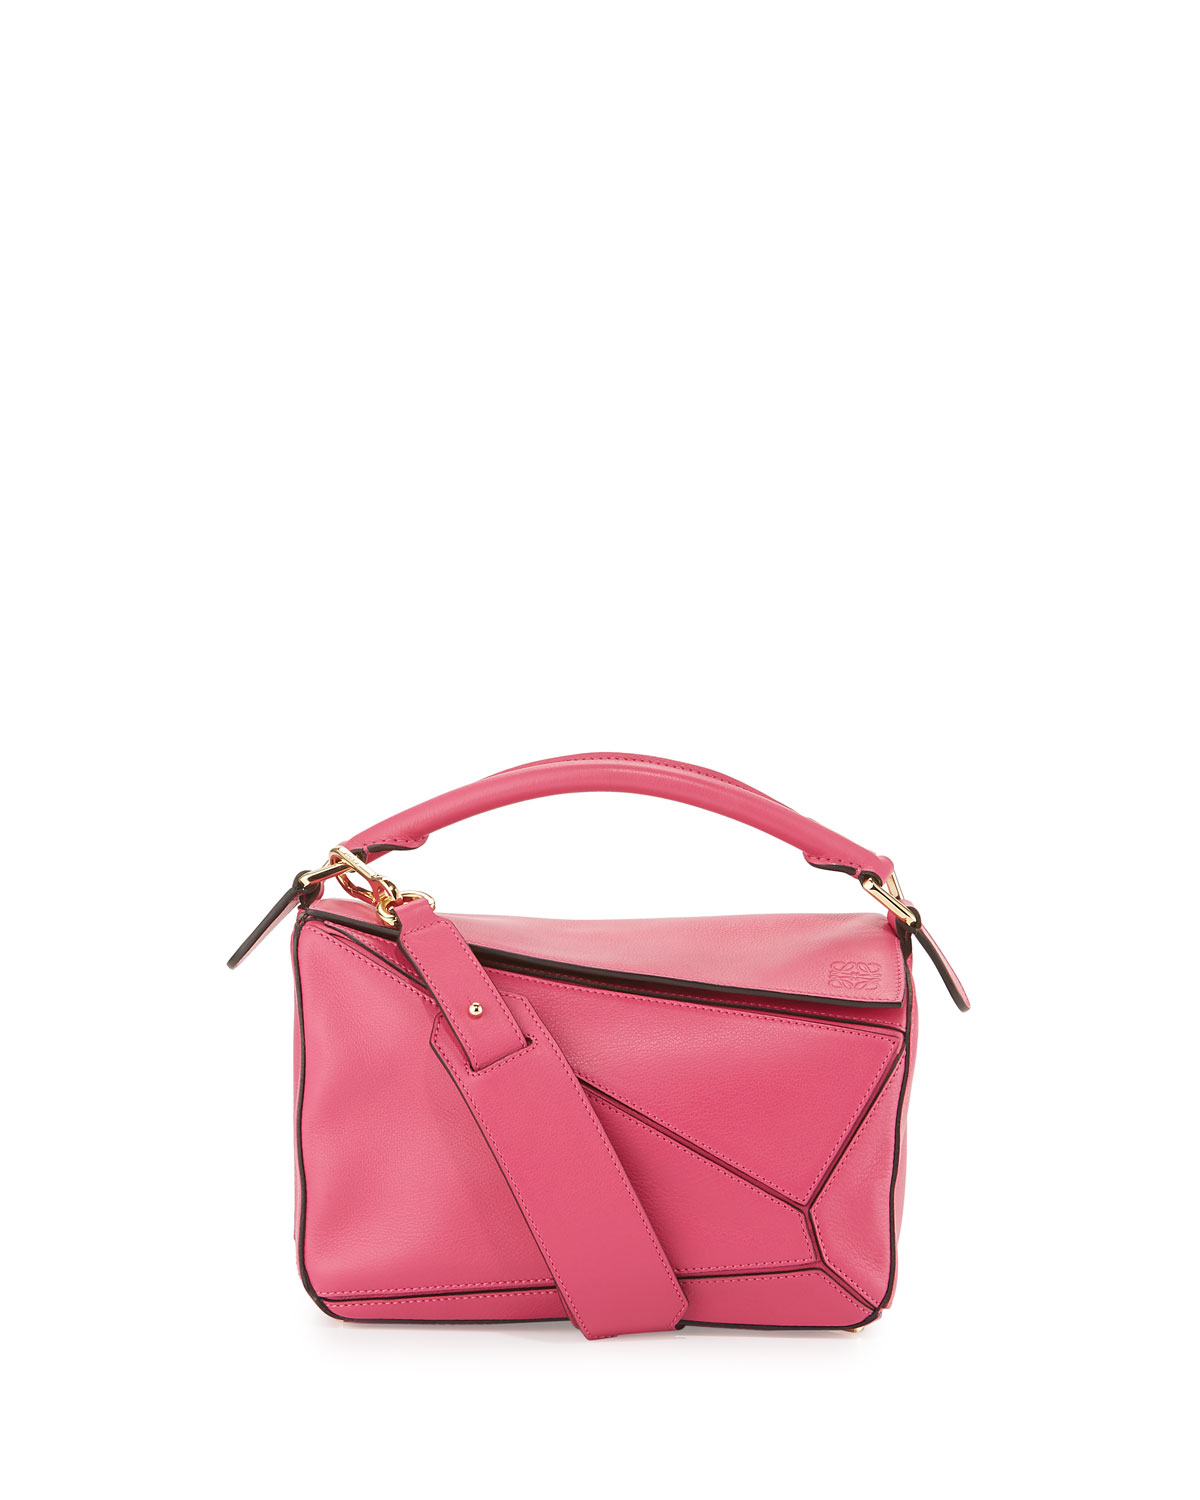 d05d4f935bb Loewe Puzzle Small Leather Satchel Bag